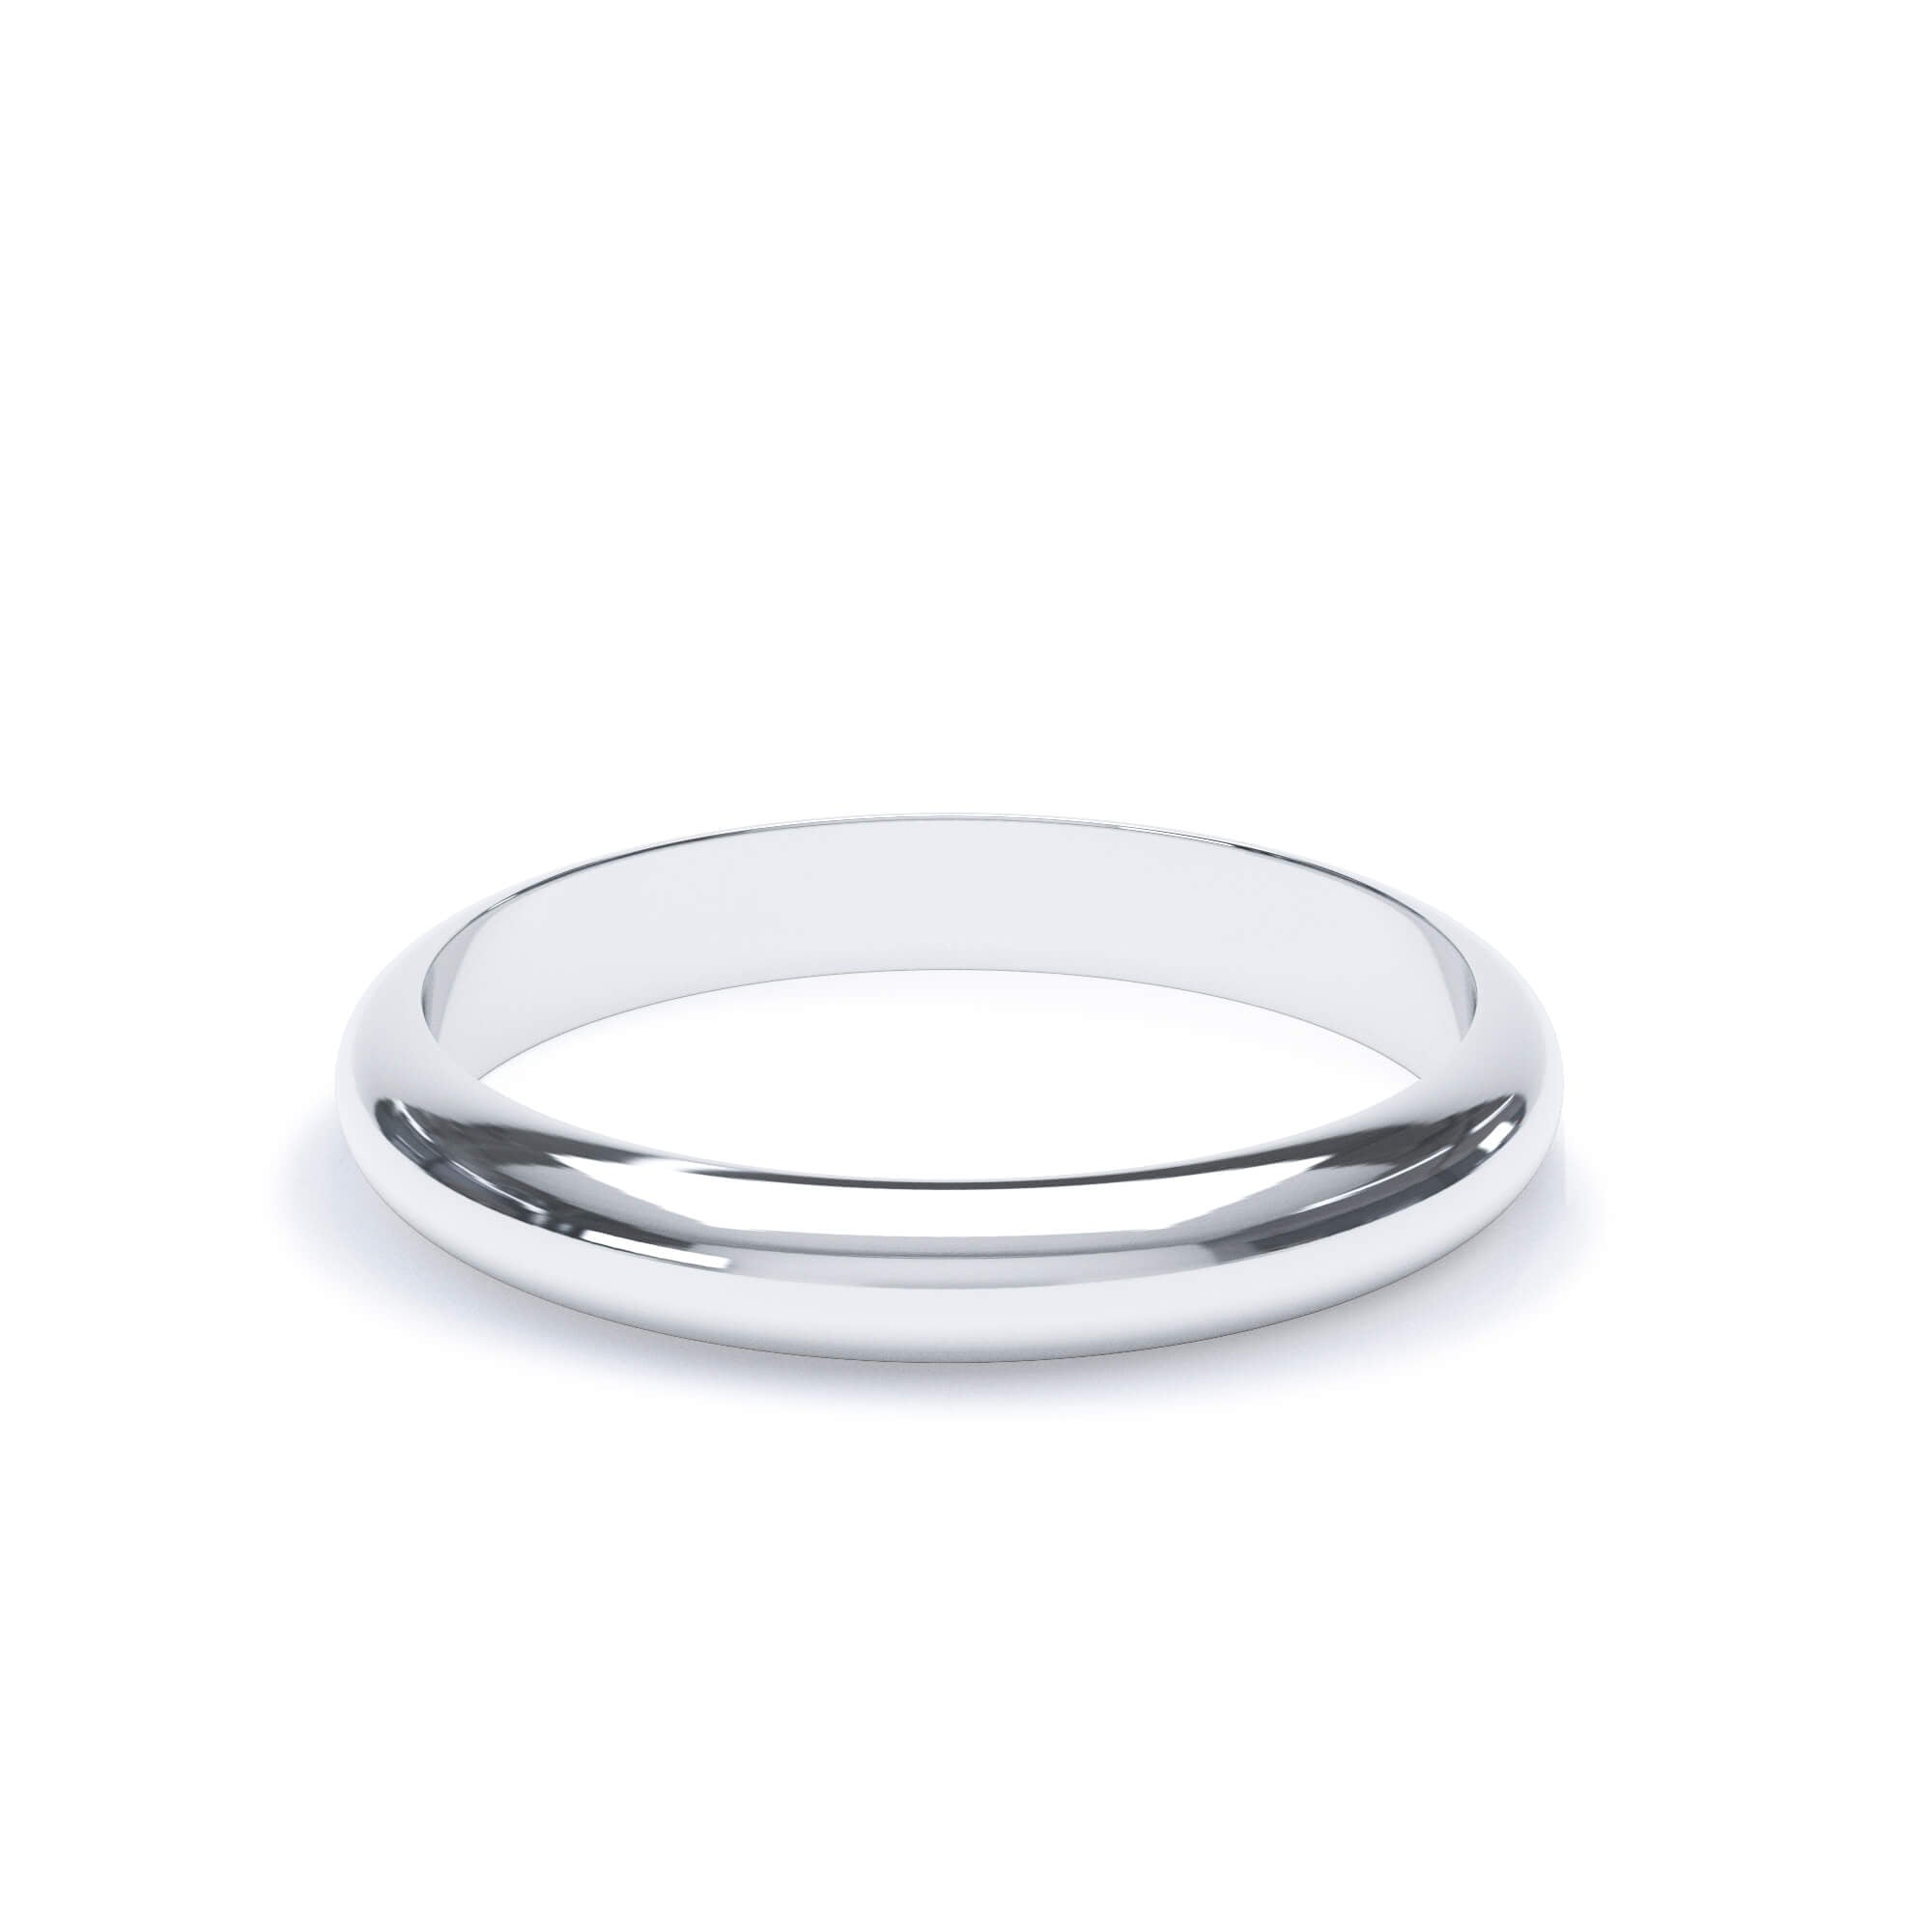 Lily Arkwright Wedding Bands 3.0mm / Platinum Women's Plain Wedding Band D Shape Profile Platinum